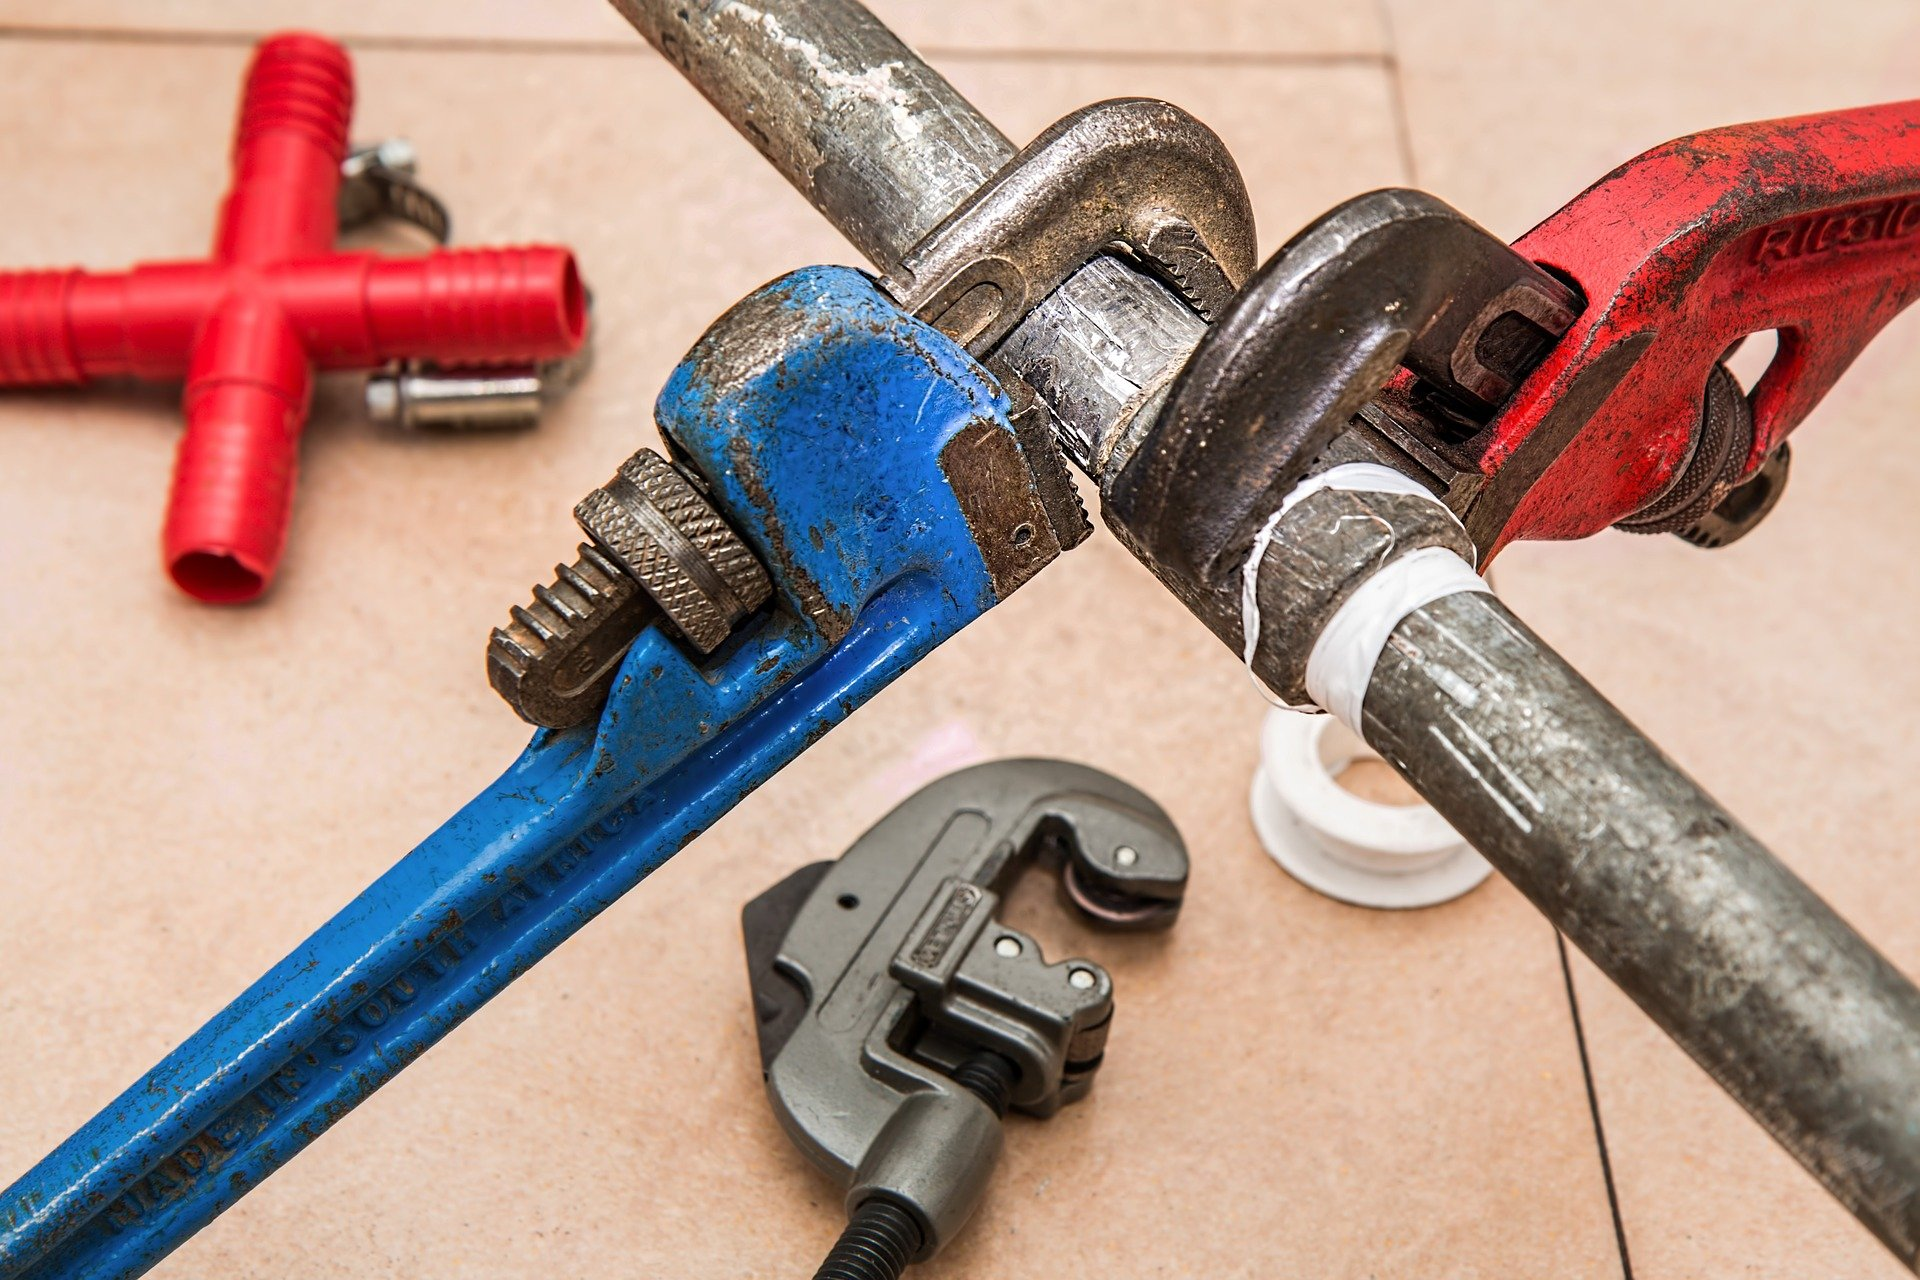 Iowa Plumber and Mechanical Contractor Bond: A Comprehensive Guide